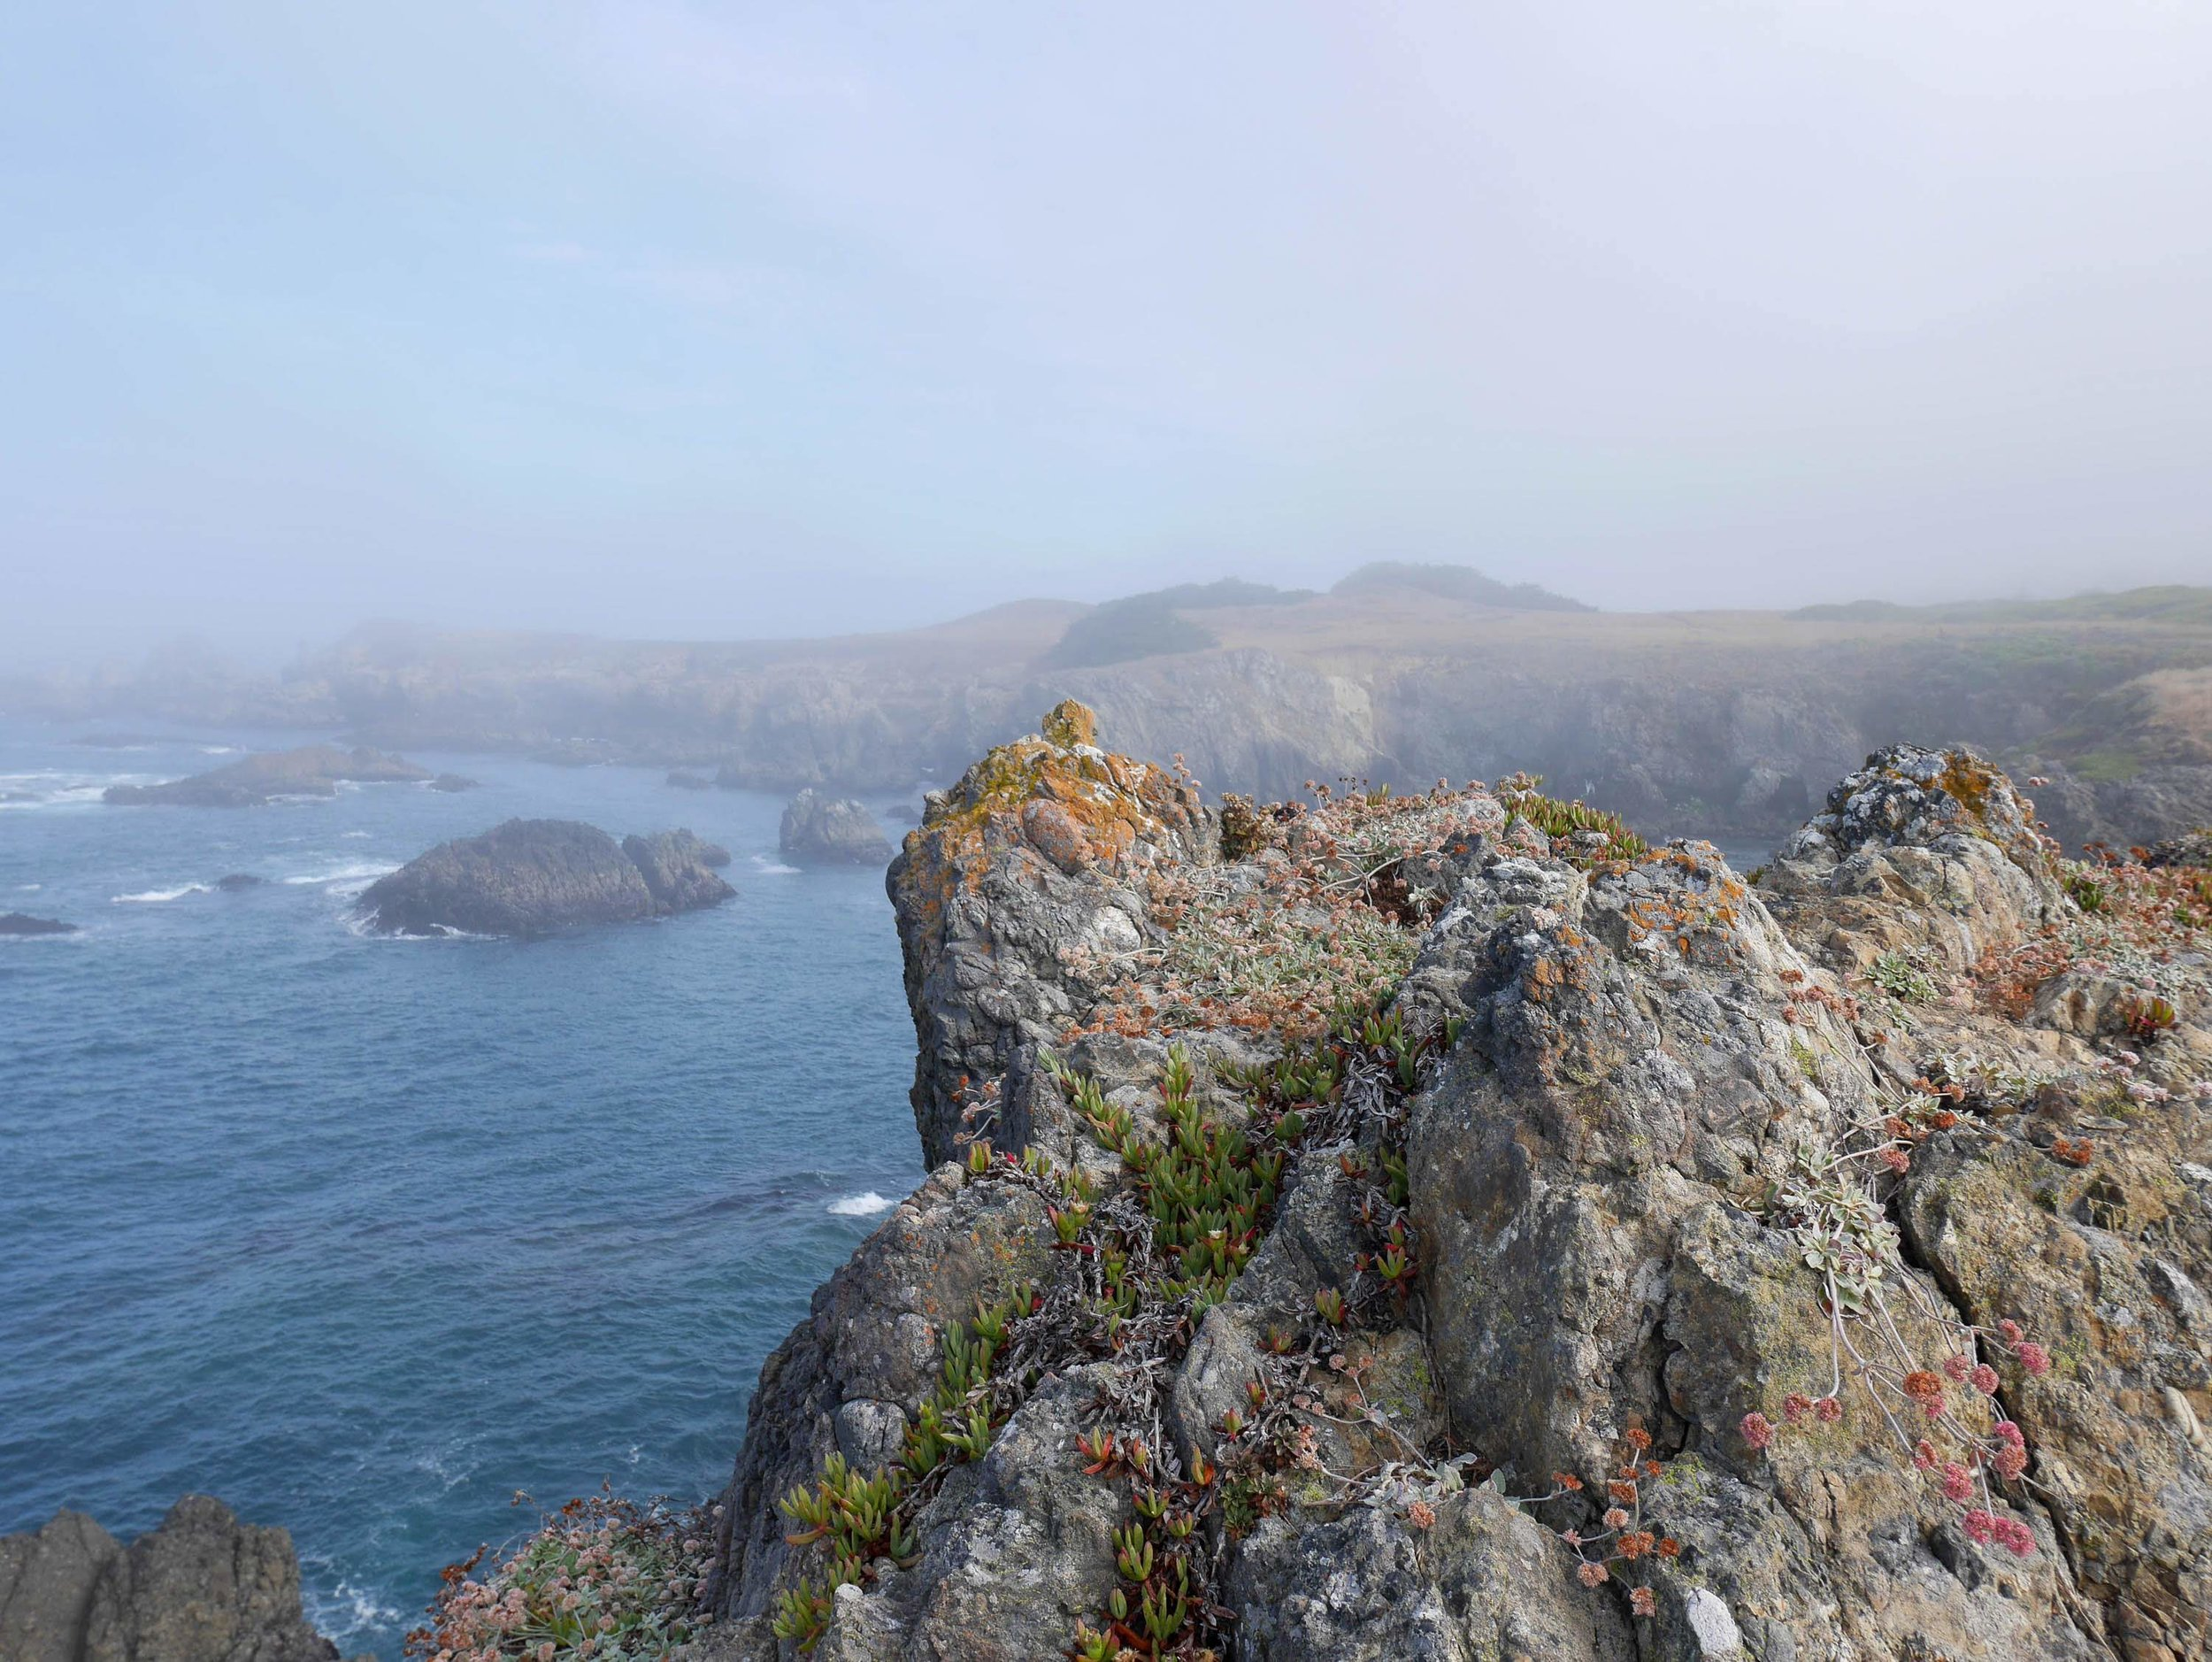 SeaRanch2019 (186 of 236).jpg